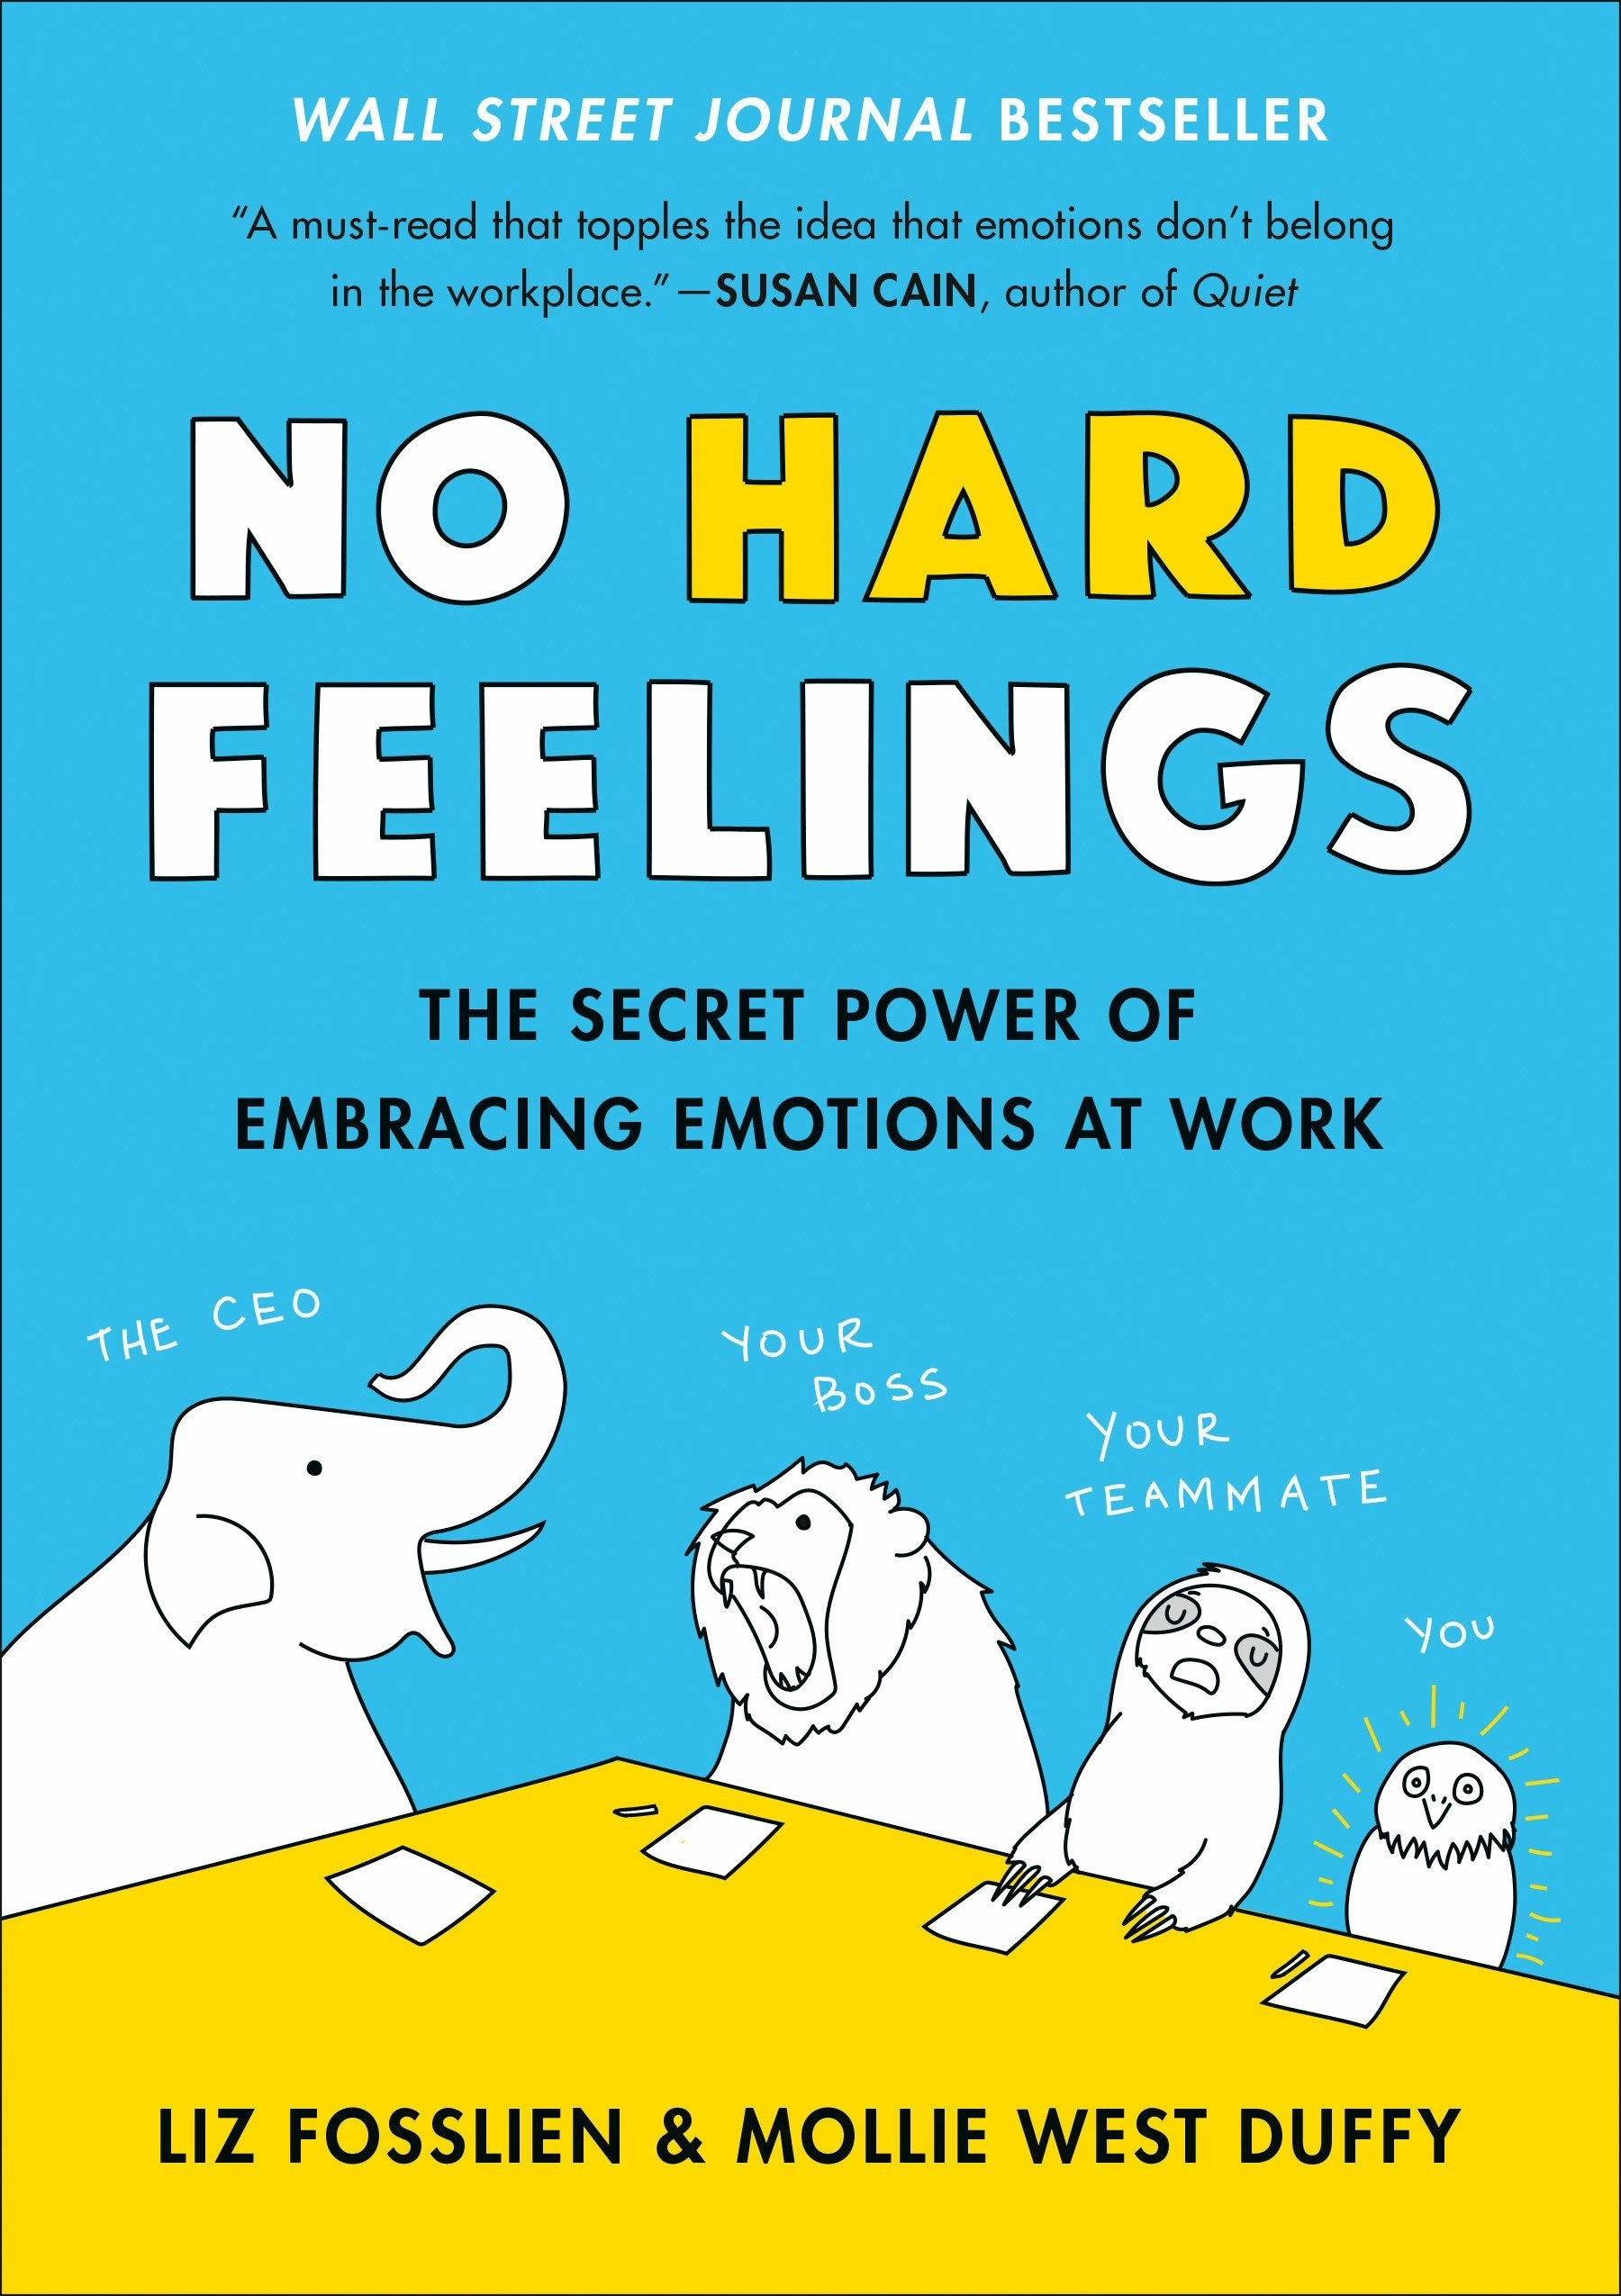 """Front cover of """"No Hard Feelings: The Secret Power of Embracing Emotions at Work"""" by Liz Fosslien and Mollie West Duffy"""